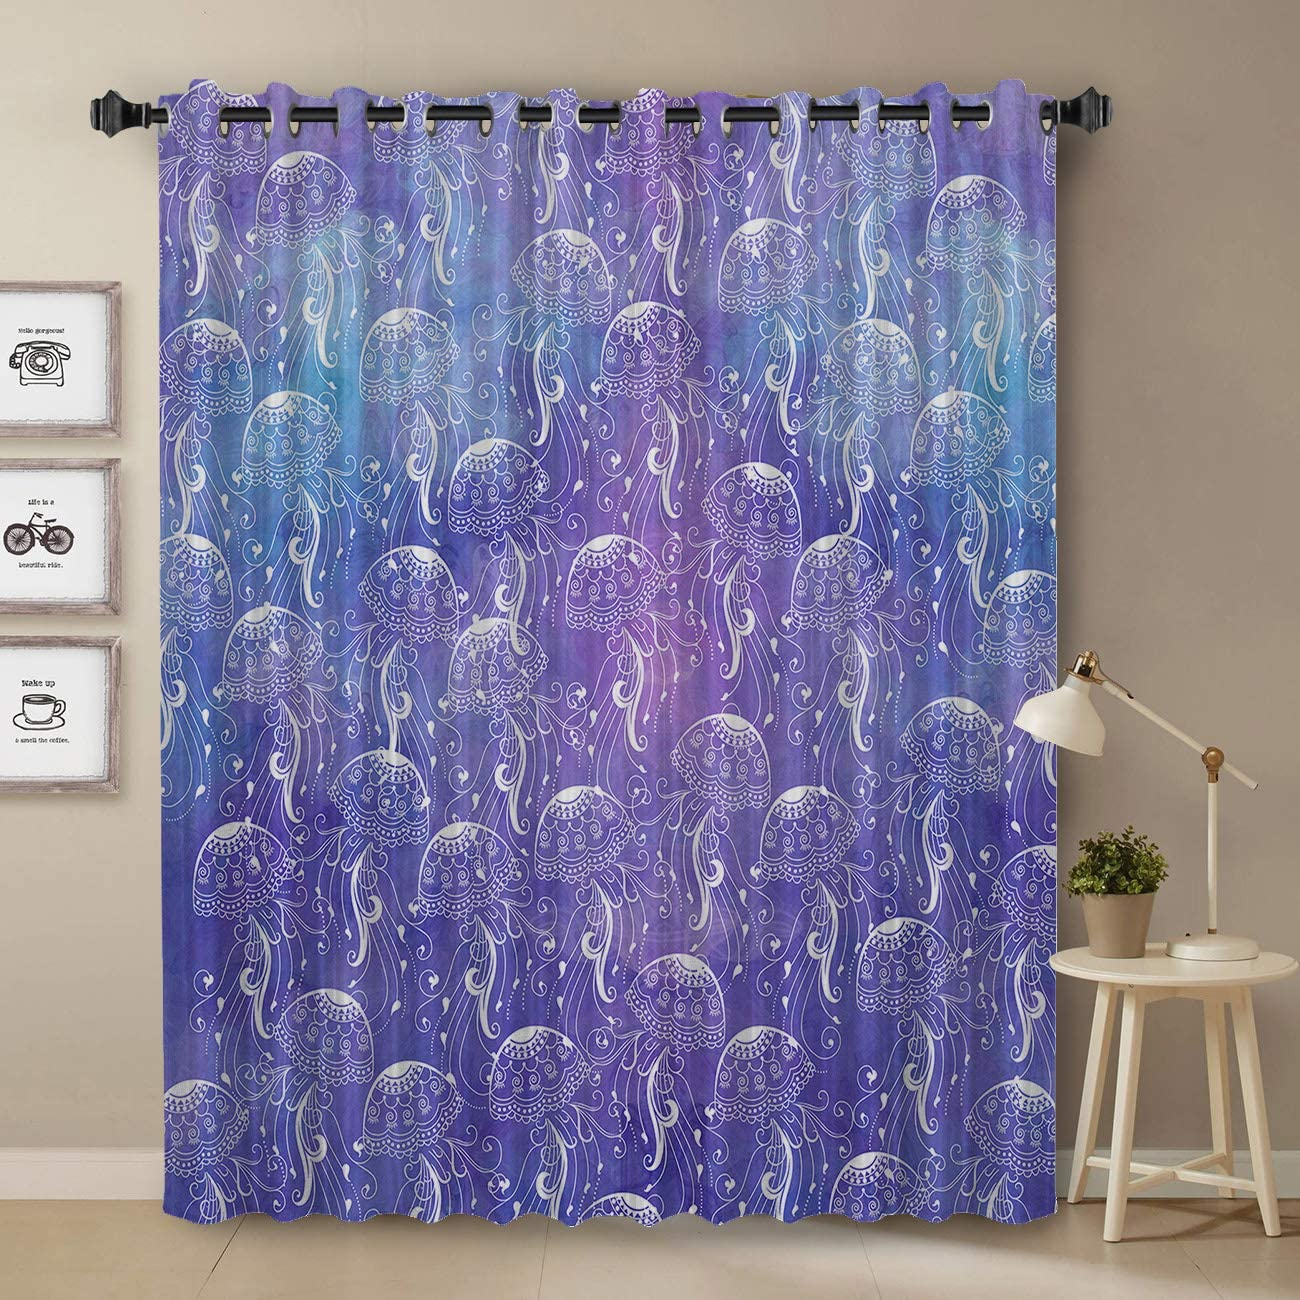 Darkening Blackout Curtain for Bedroom Quality inspection - Tre 45 Window inch Free shipping on posting reviews Long